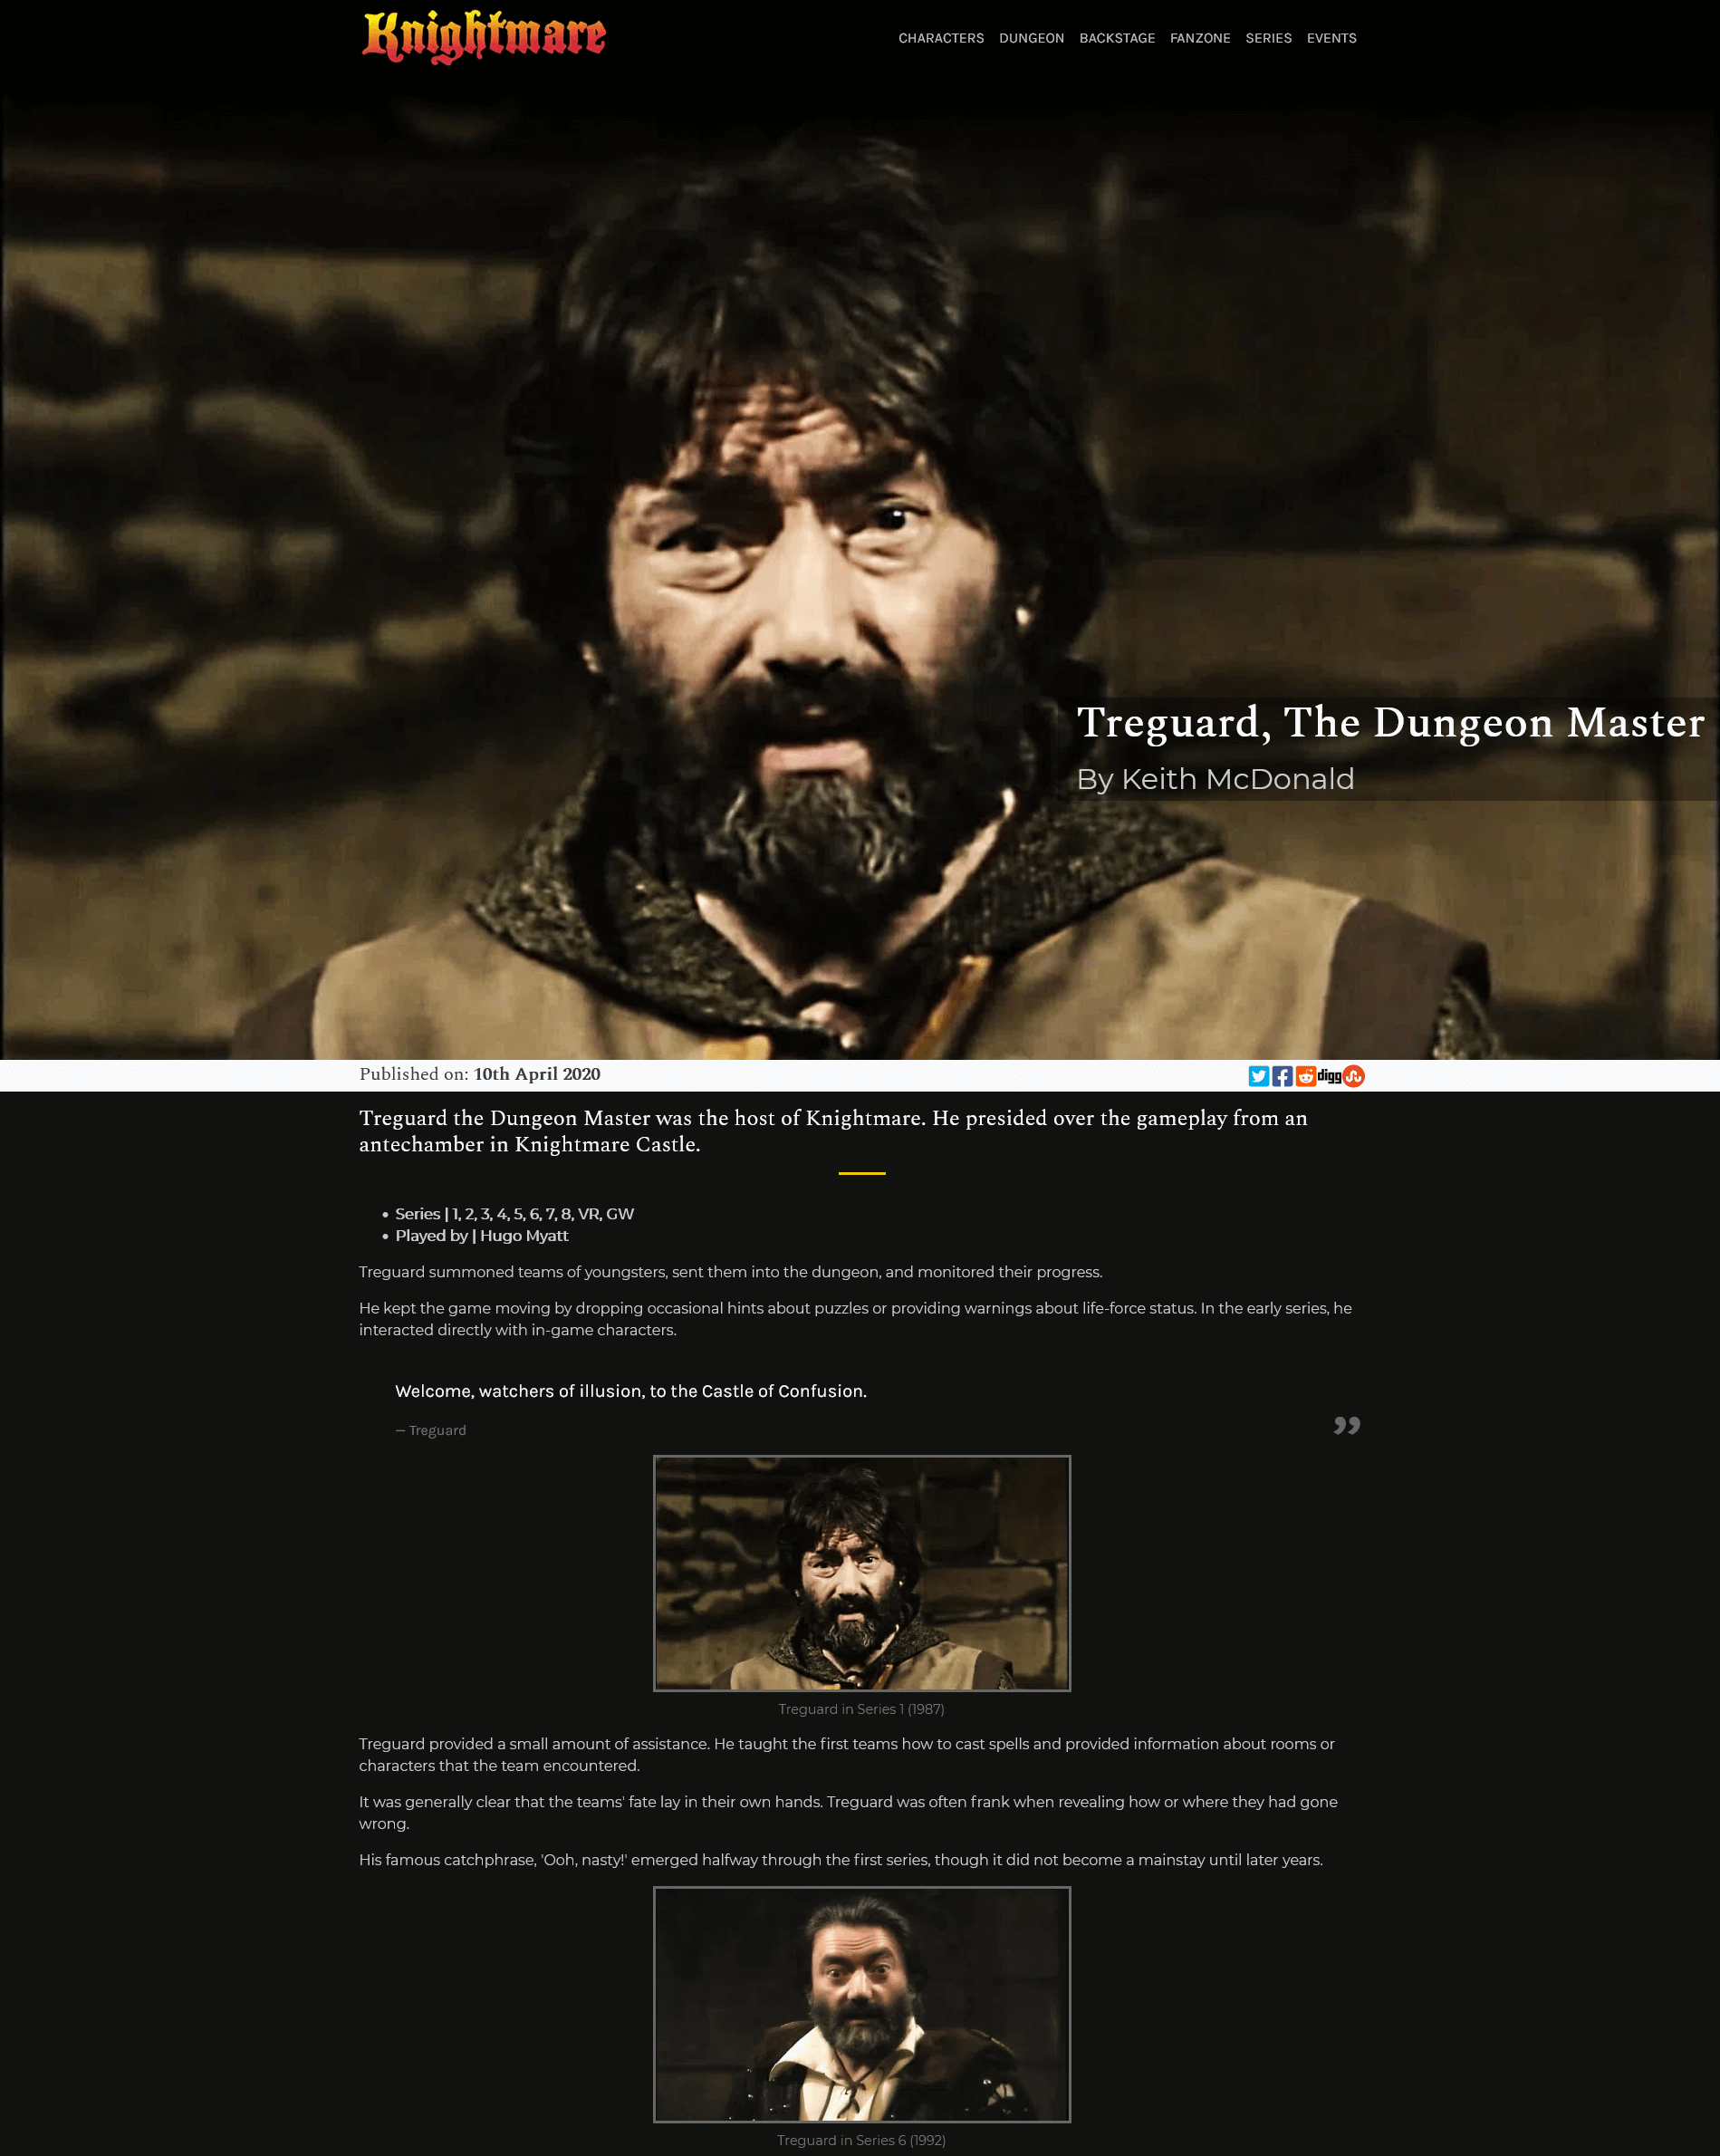 New character pages for the new Knightmare.com (launched 2020)